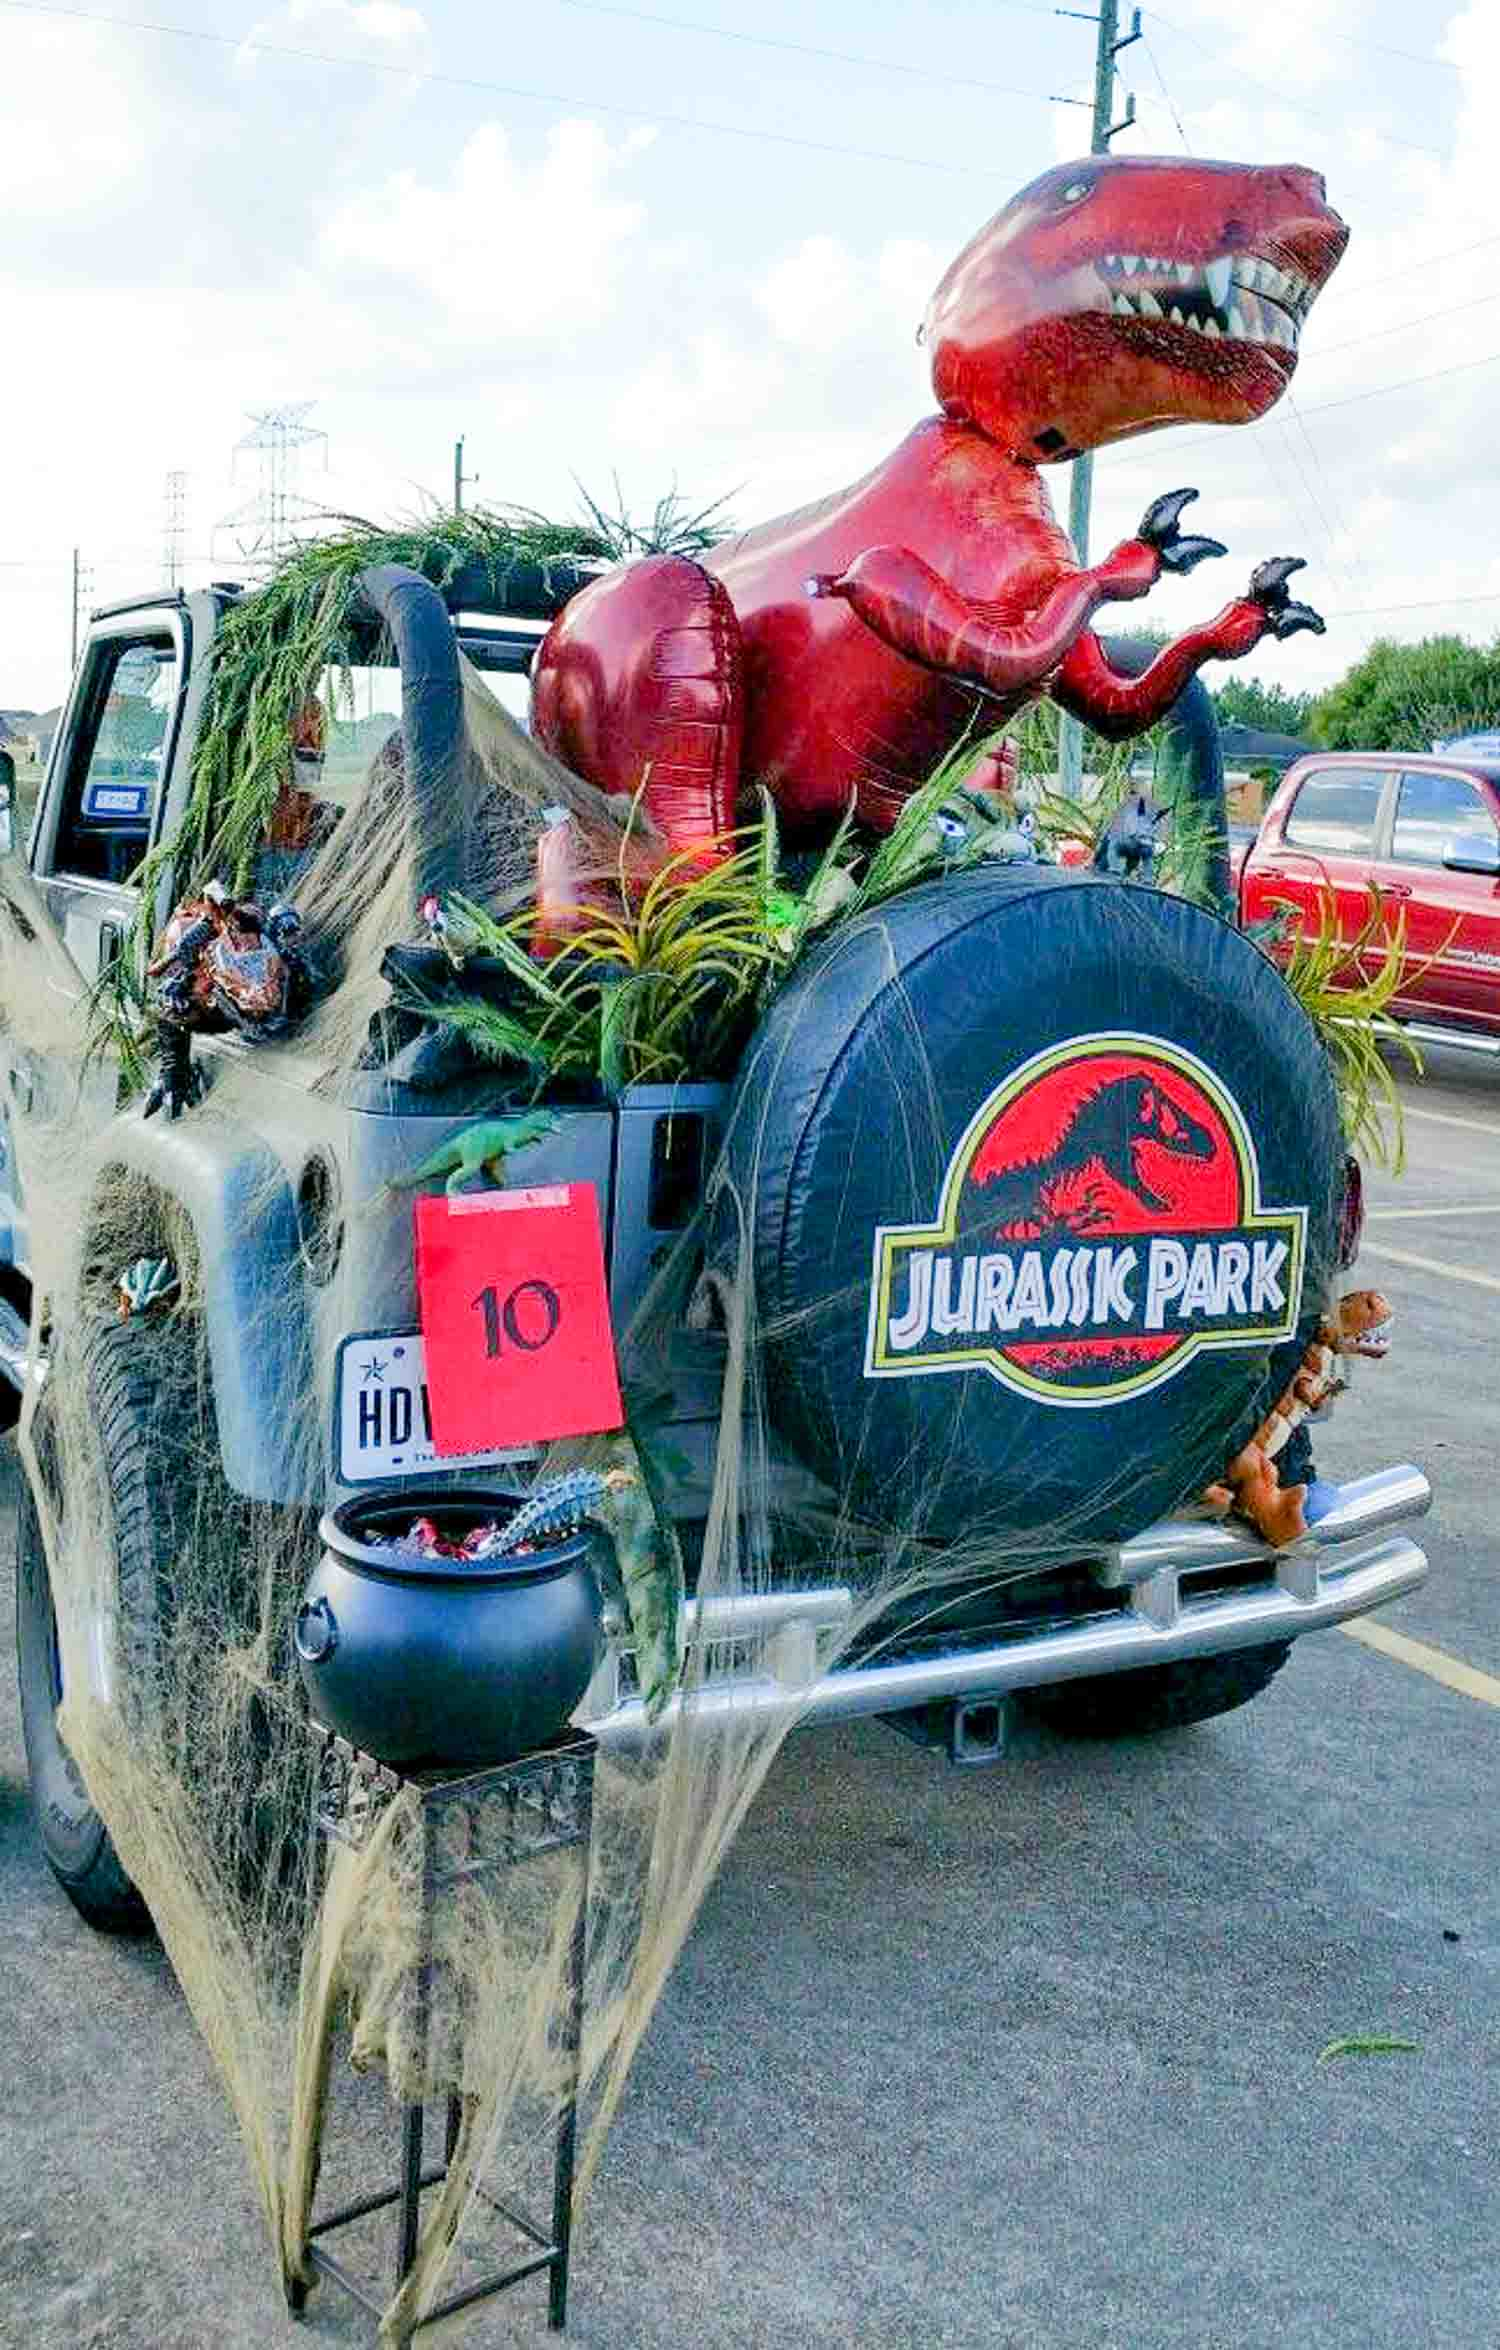 A jeep filled with plants and an inflatable dinosaur with a black covering saying Jurassic Park.